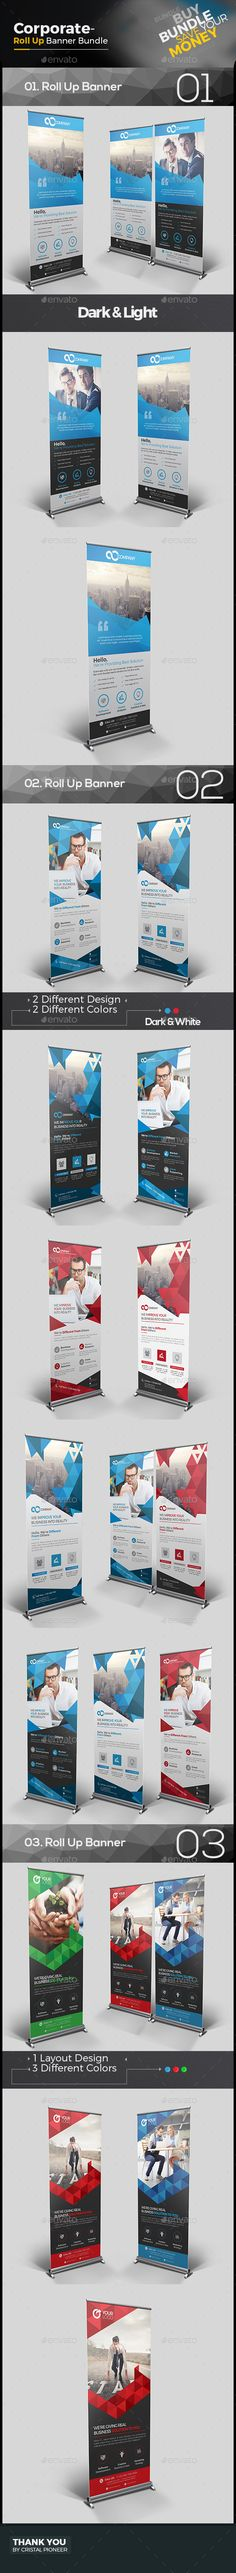 3 Corporate Roll Up Banner Templates Vector EPS, AI Illustrator. Download here: http://graphicriver.net/item/corporate-roll-up-banner-bundle-3-in-1/16140262?ref=ksioks